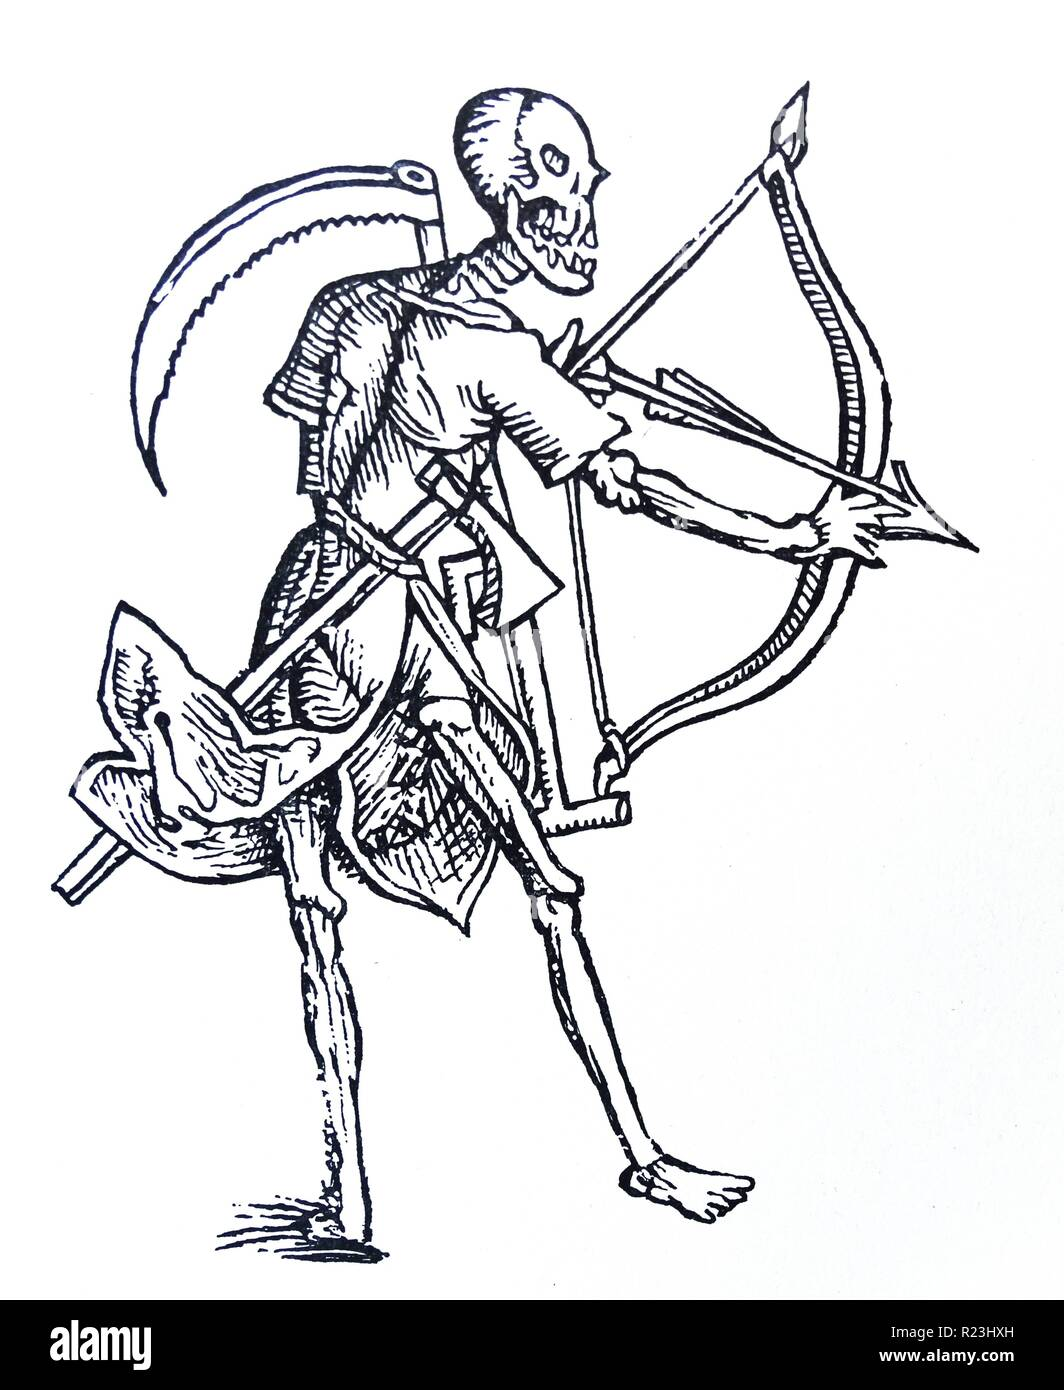 Mediaeval line drawing of death with a bow and scythe. Dated 13th Century - Stock Image